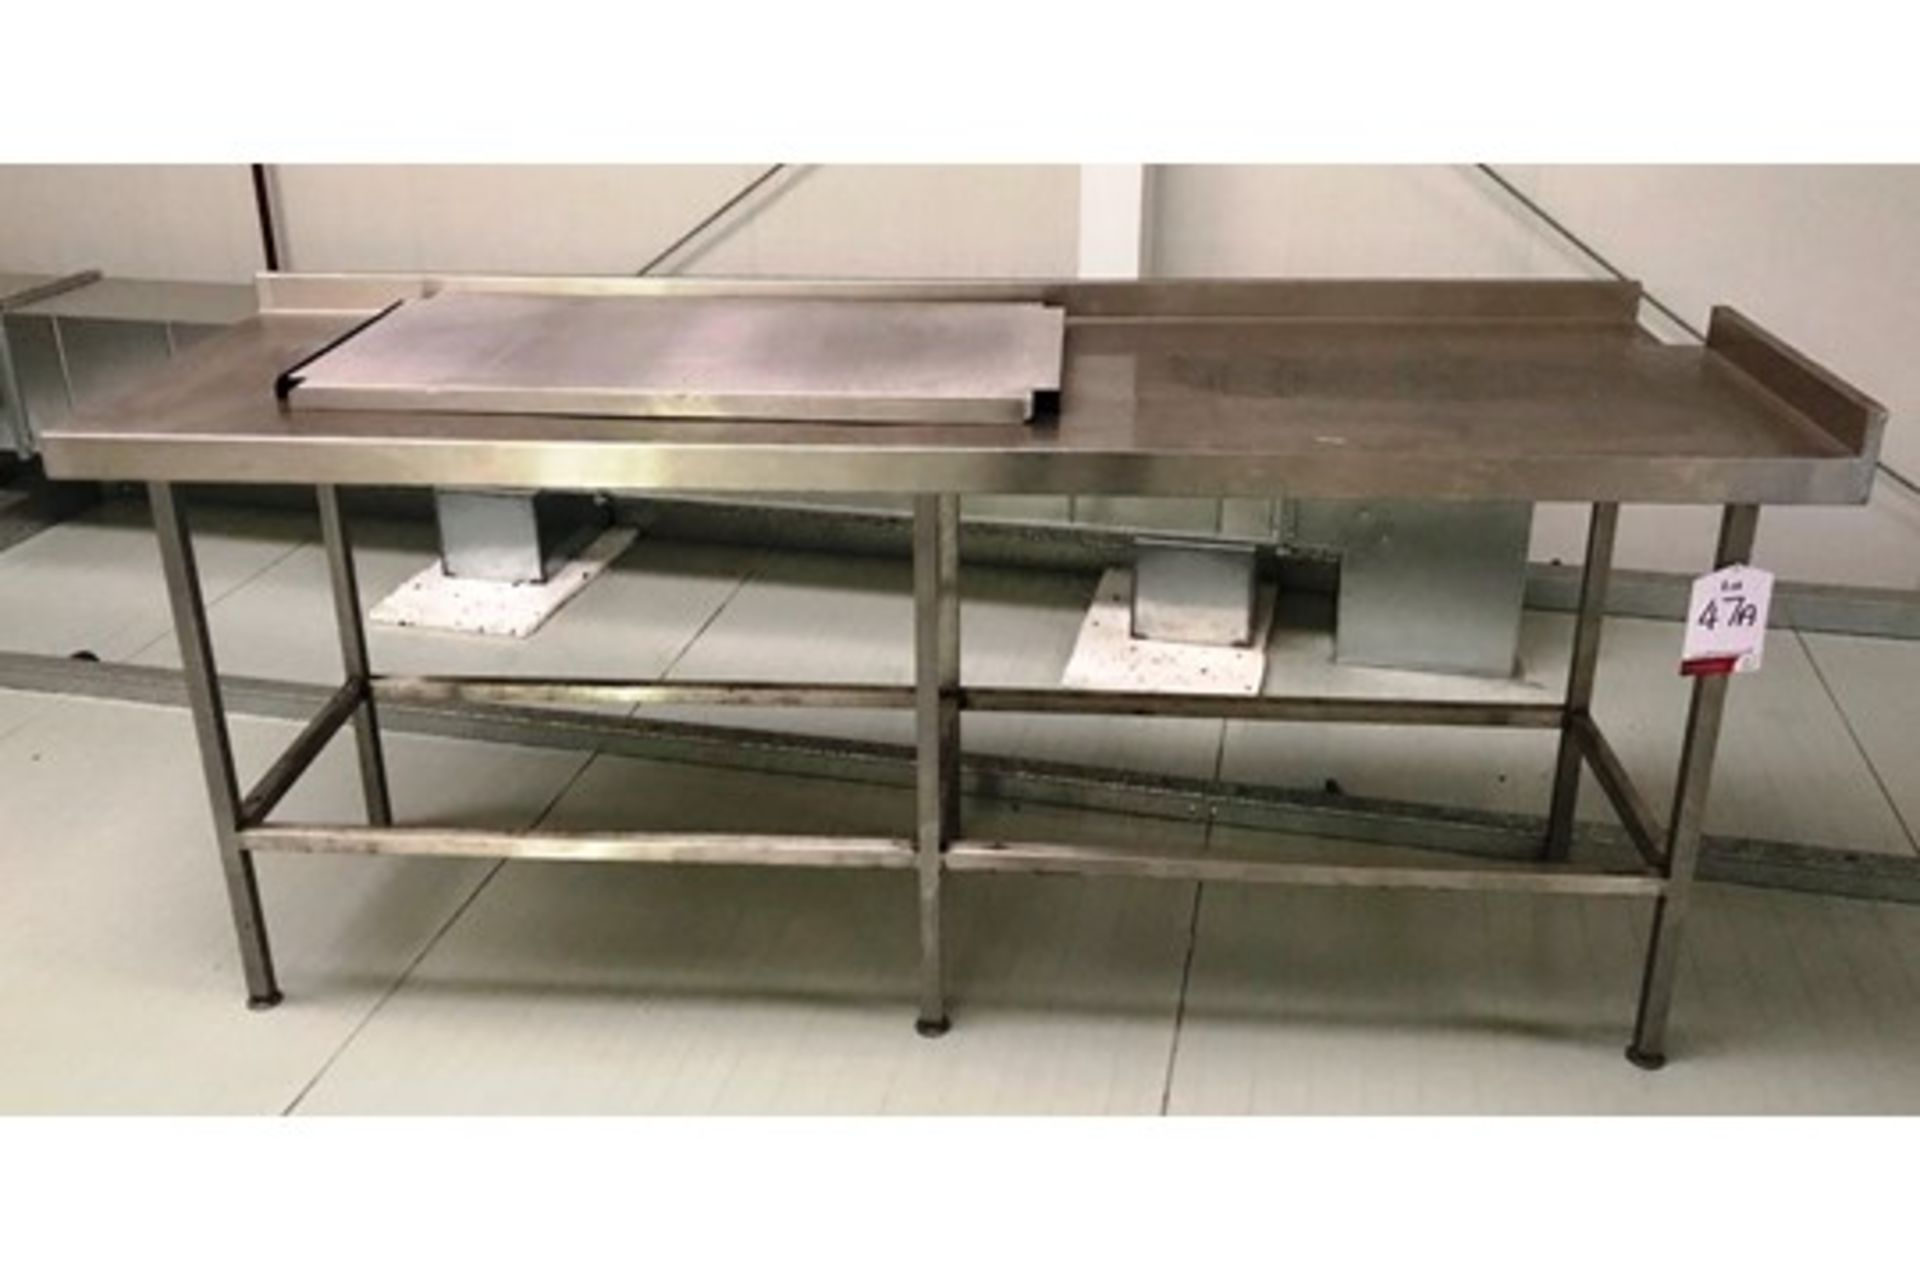 Lot 5 - Stainless Steel Preparation Table w/ Sidestand & Upstand - 2220mm Length